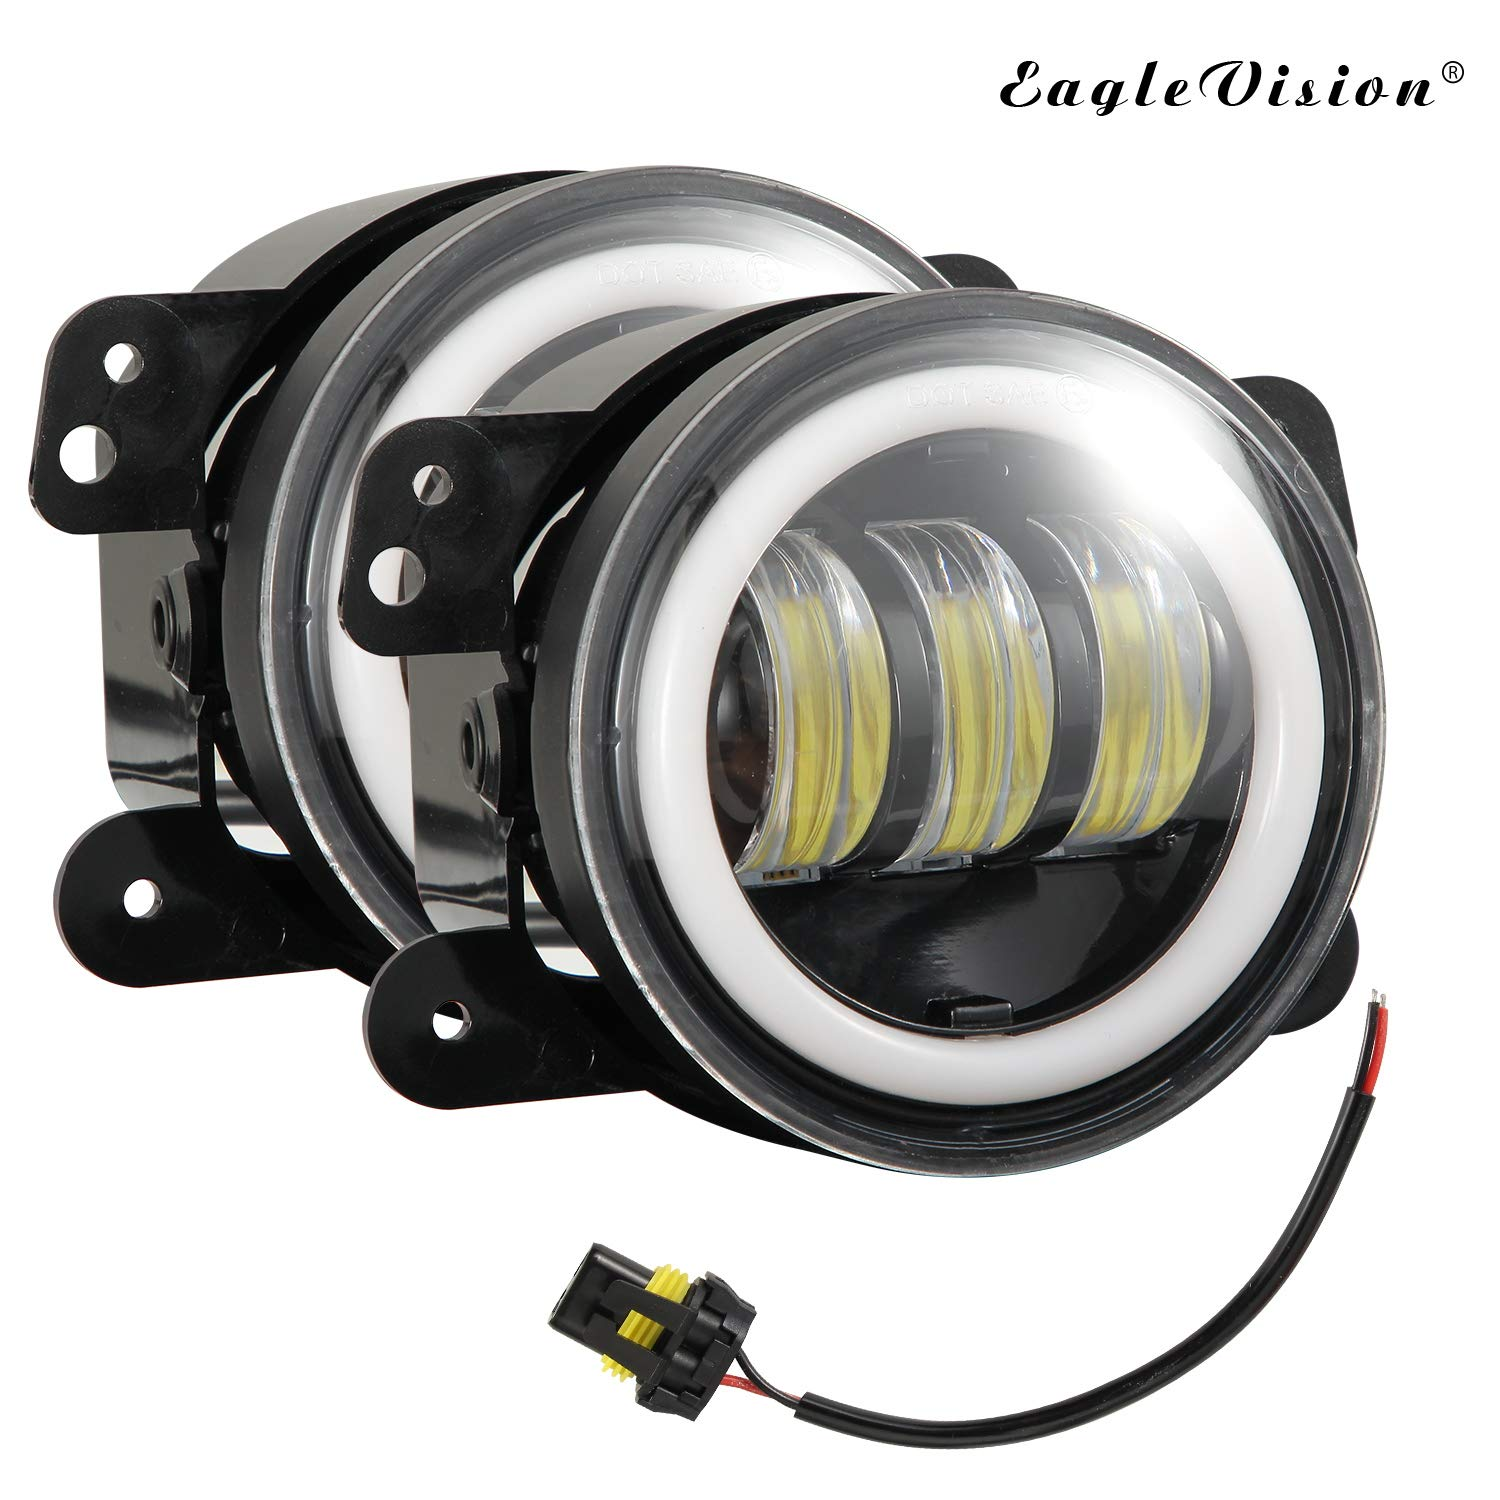 Elliot Jonah 2PCS LED car Motorcycle Headlights 4 inch Fog lamp Drive lamp Auxiliary lamp with Bracket Adapter Ring for Jeep Wrangler Harley